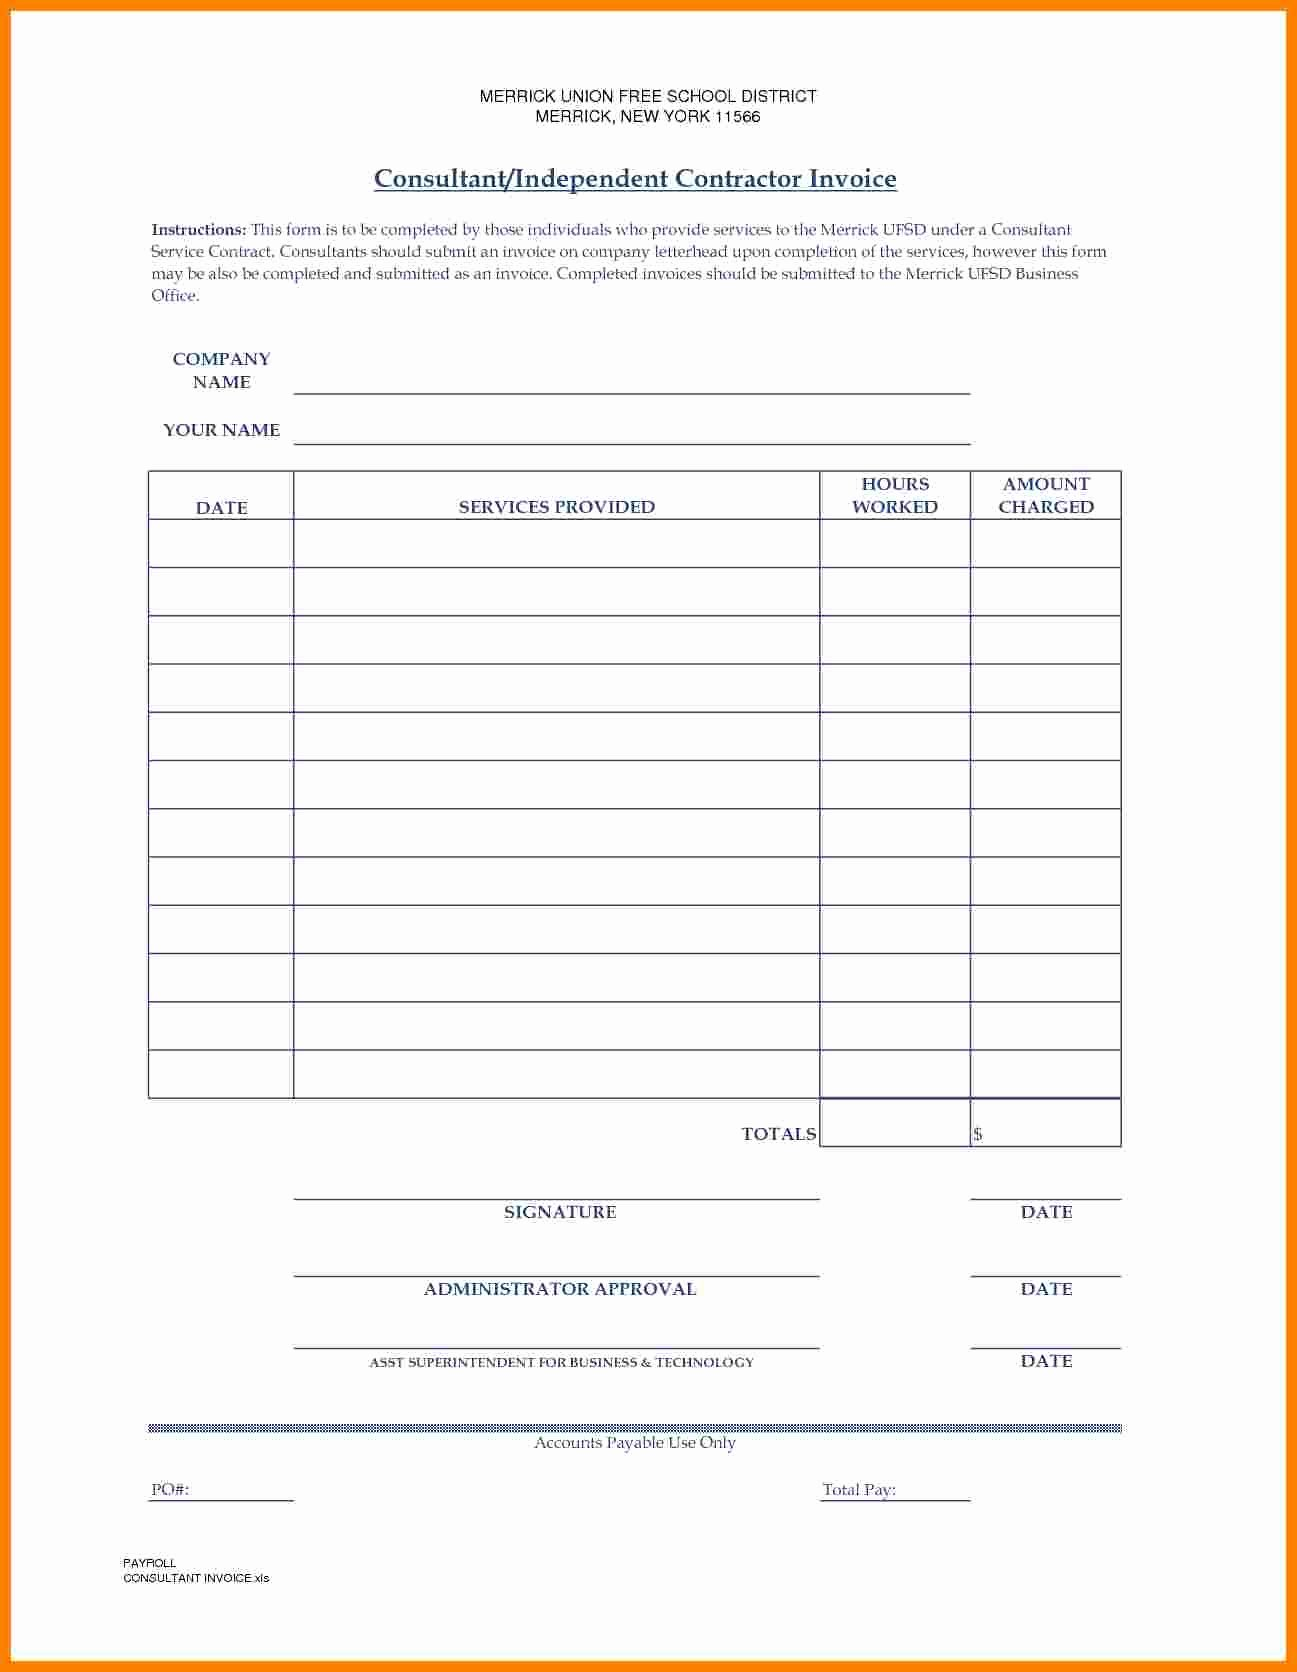 Independent Contractor Invoice Template Fresh 7 Independent Contractor Invoice